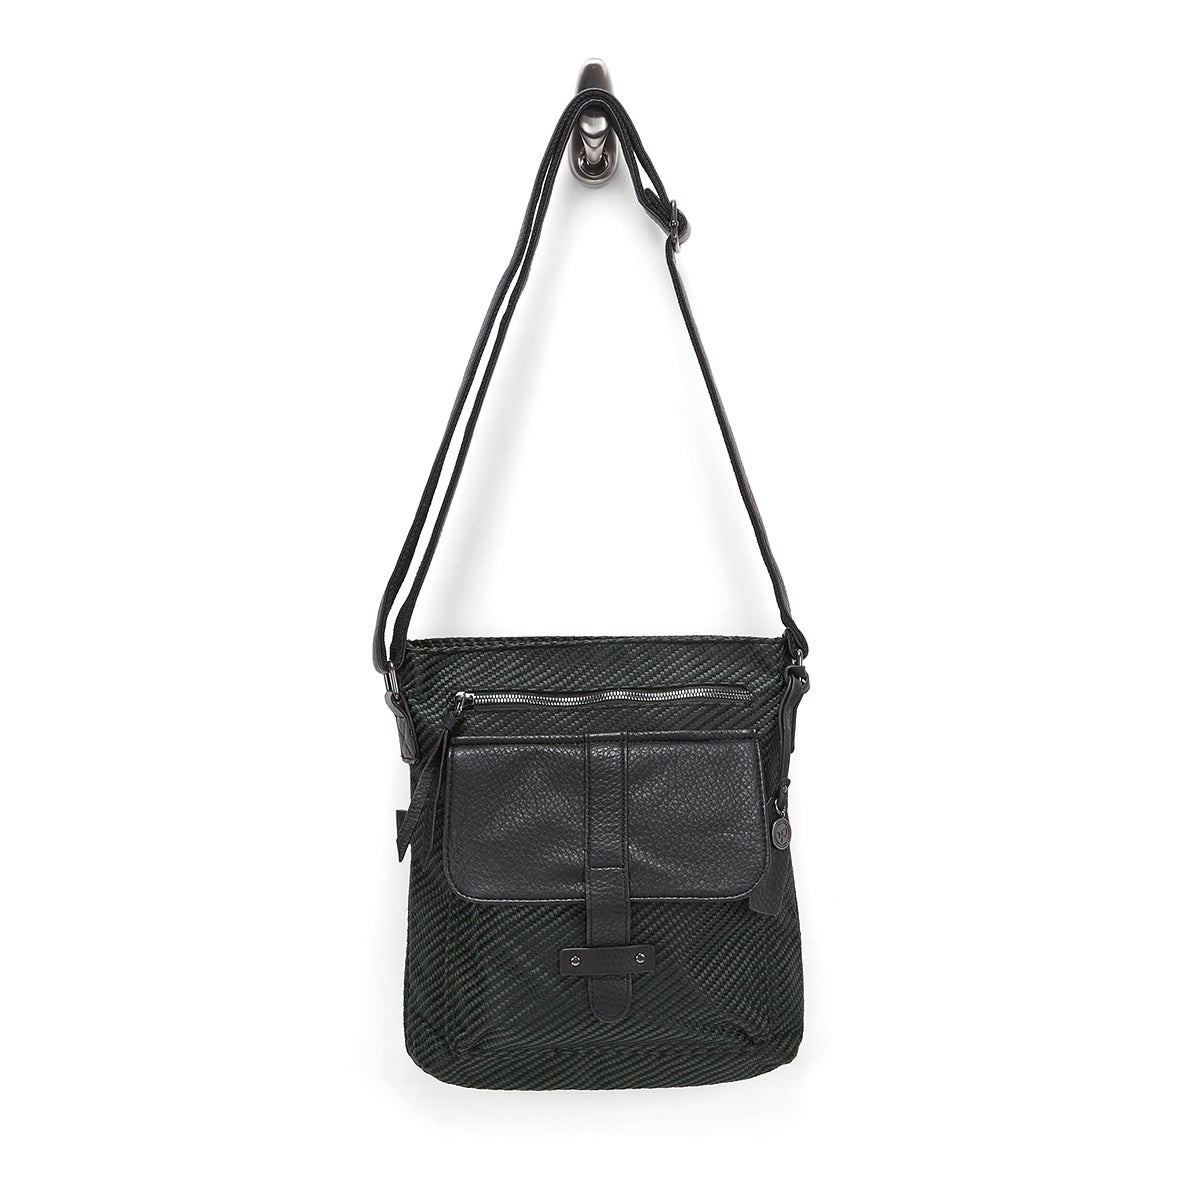 Lds Gotta Run obsidian cross body bag